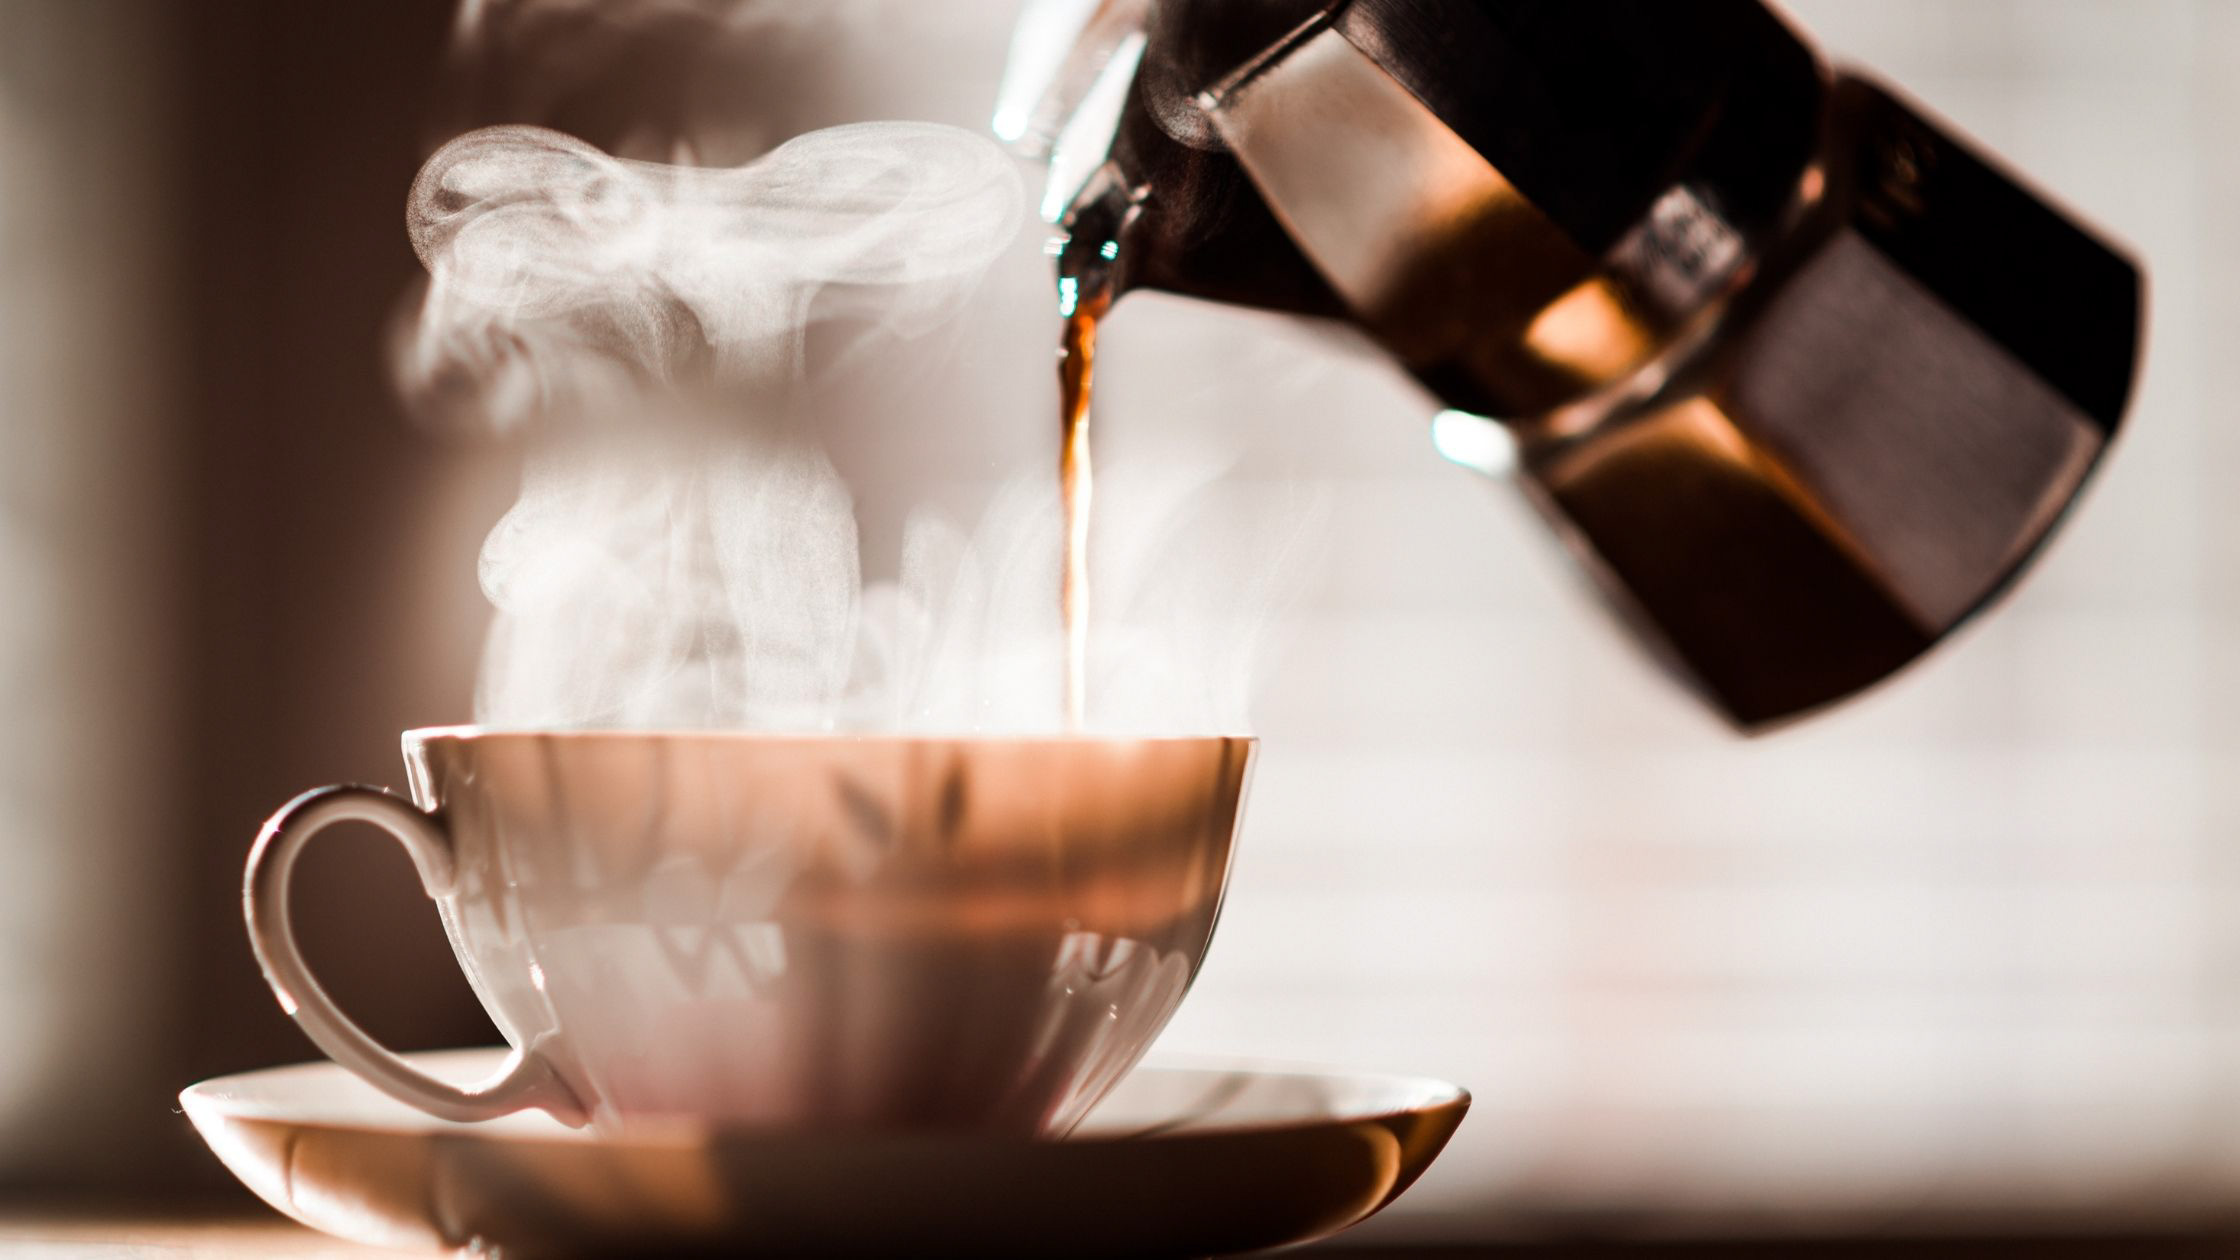 Pouring morning coffee Image - Canva